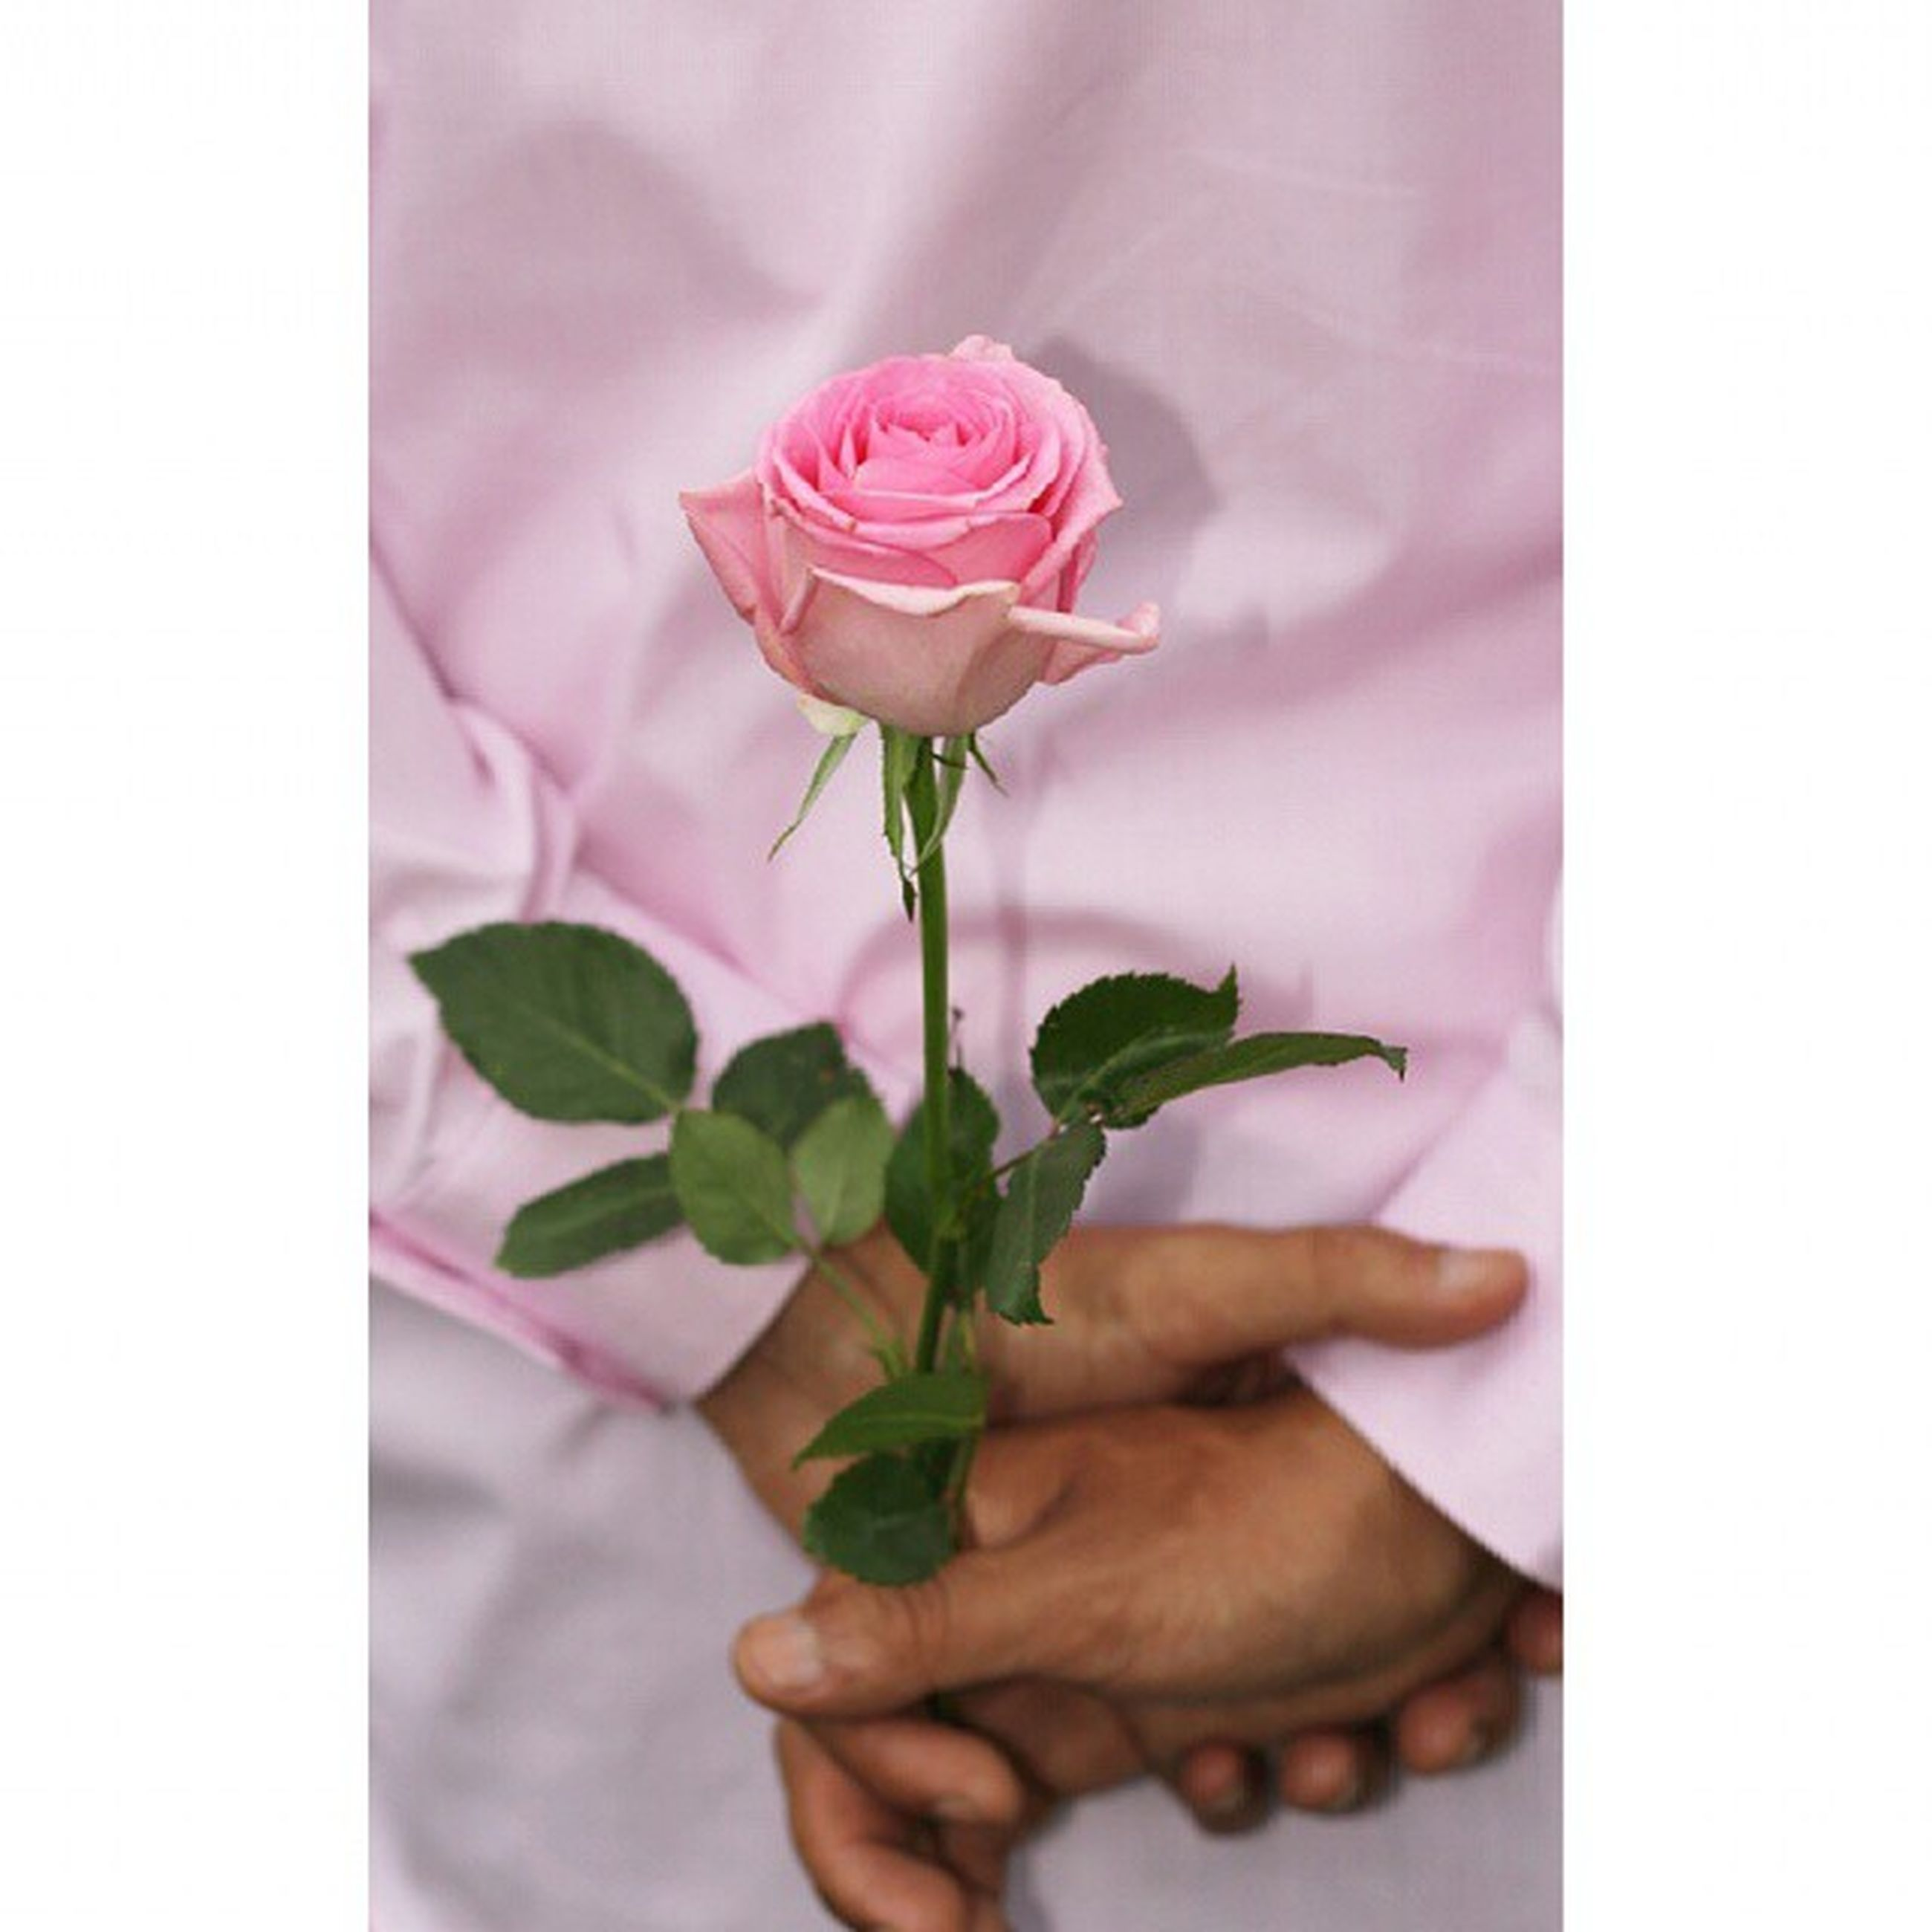 flower, person, freshness, petal, holding, fragility, flower head, indoors, close-up, part of, rose - flower, cropped, vase, beauty in nature, pink color, single flower, bouquet